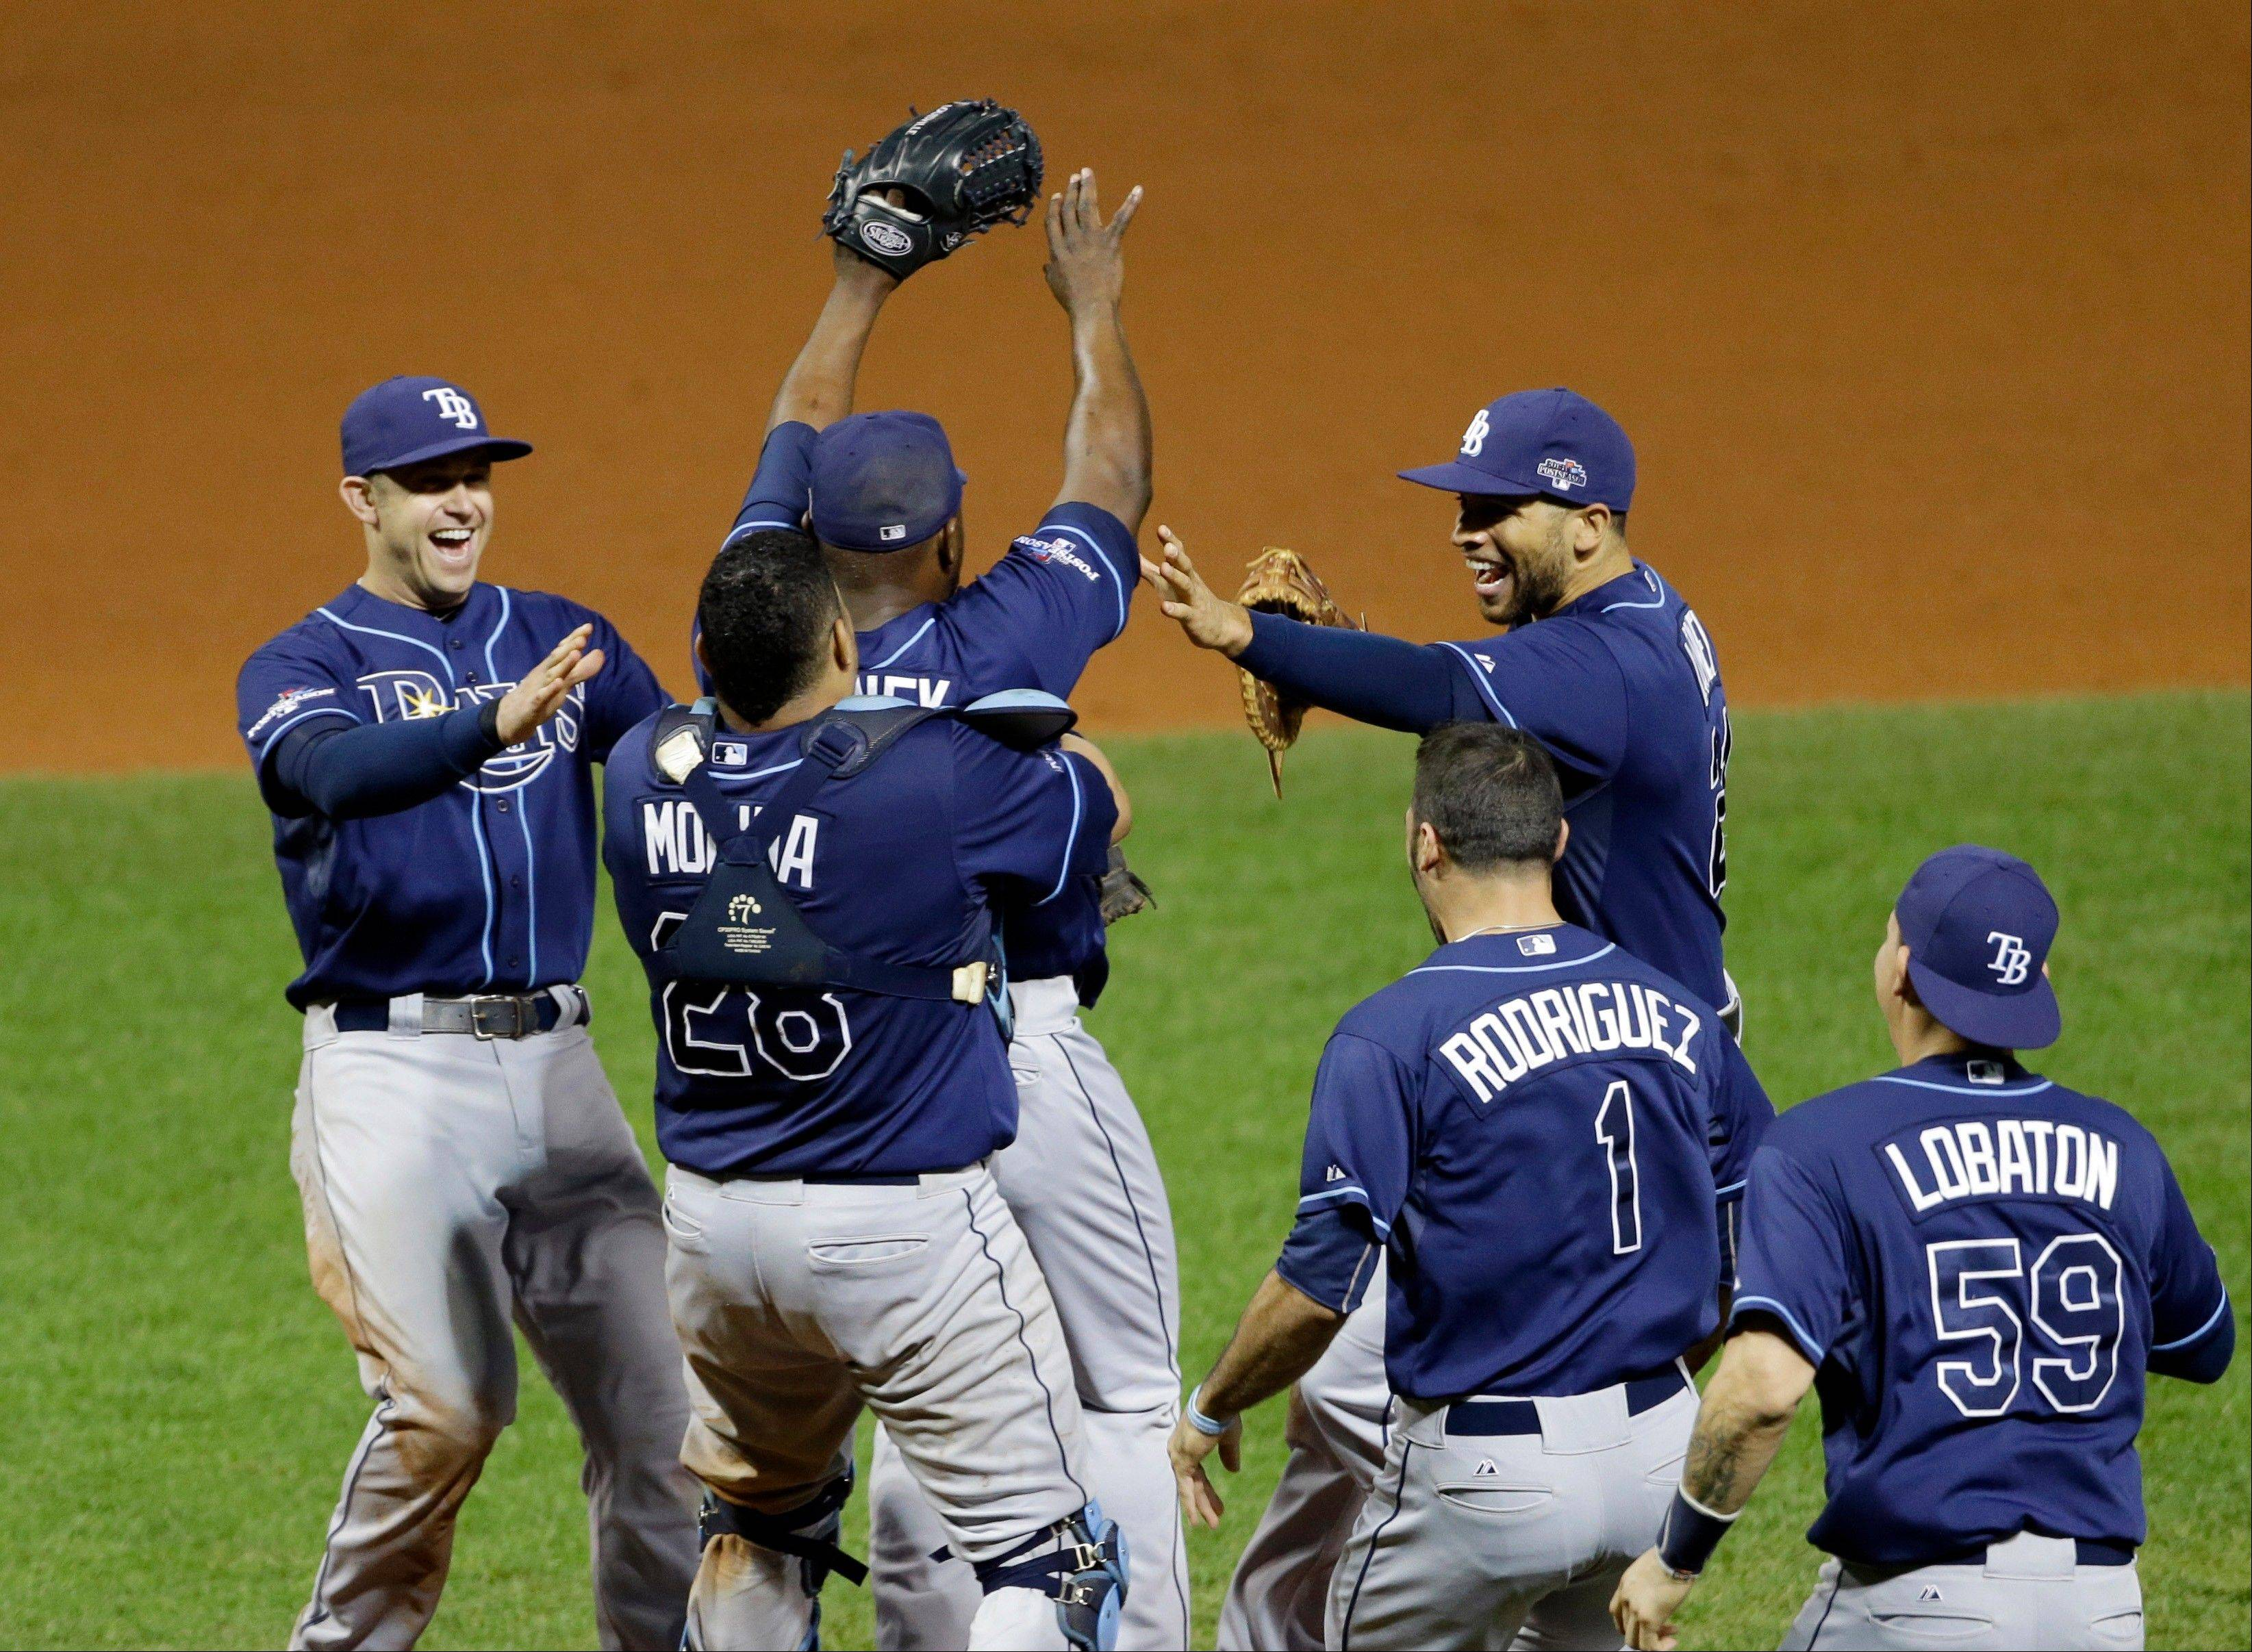 The Tampa Bay Rays celebrate after defeating the Cleveland Indians 4-0 in the AL wild-card baseball game Tuesday, Oct. 1, 2013, in Cleveland. The Rays move on to play the Boston Red Sox in the AL division series. (AP Photo/Mark Duncan)